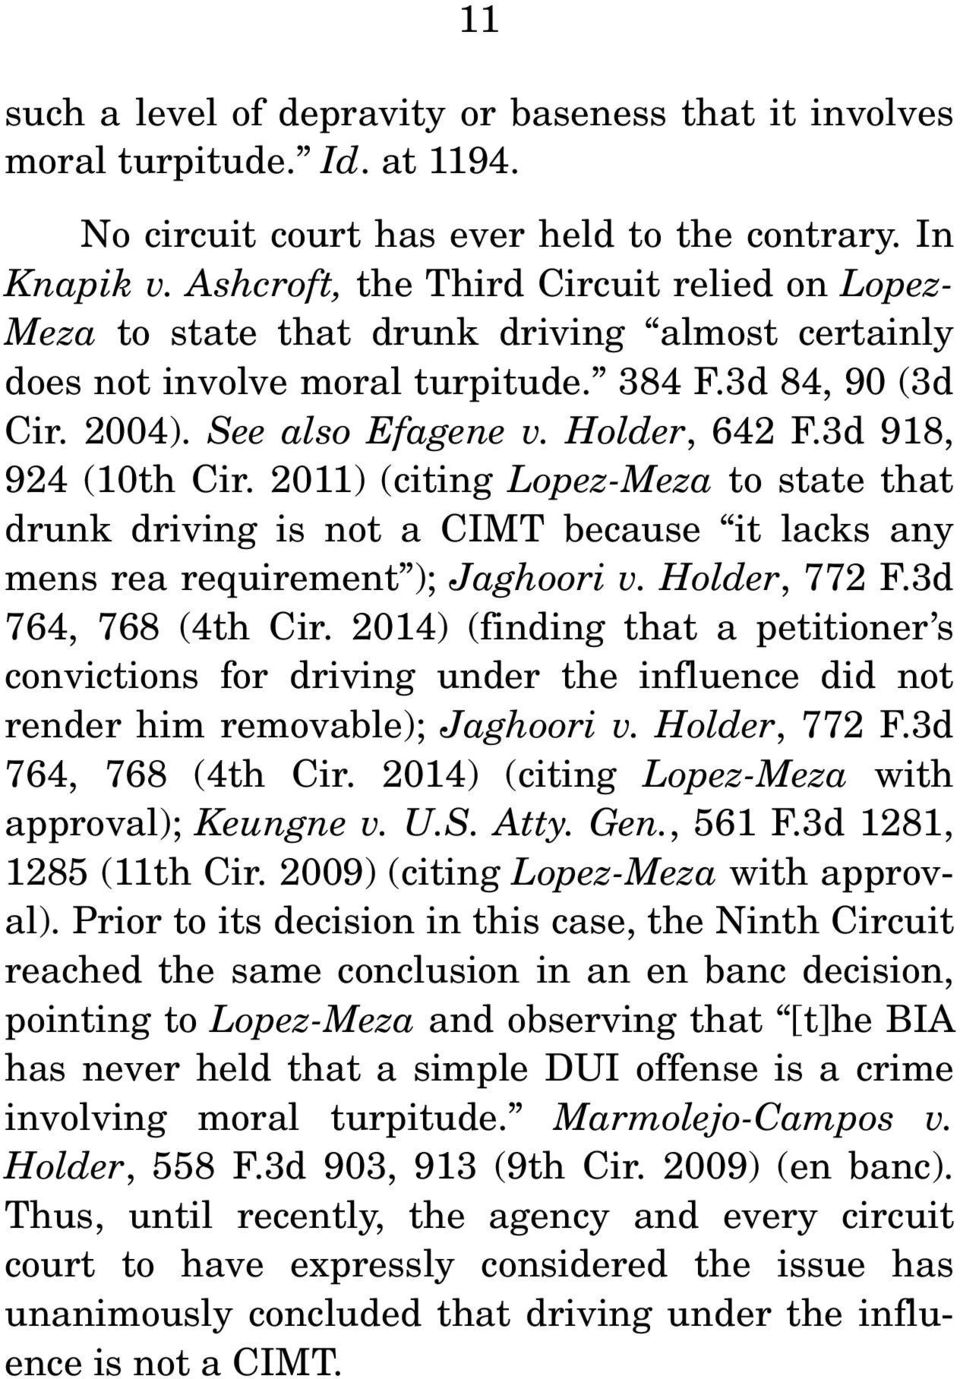 3d 918, 924 (10th Cir. 2011) (citing Lopez-Meza to state that drunk driving is not a CIMT because it lacks any mens rea requirement ); Jaghoori v. Holder, 772 F.3d 764, 768 (4th Cir.